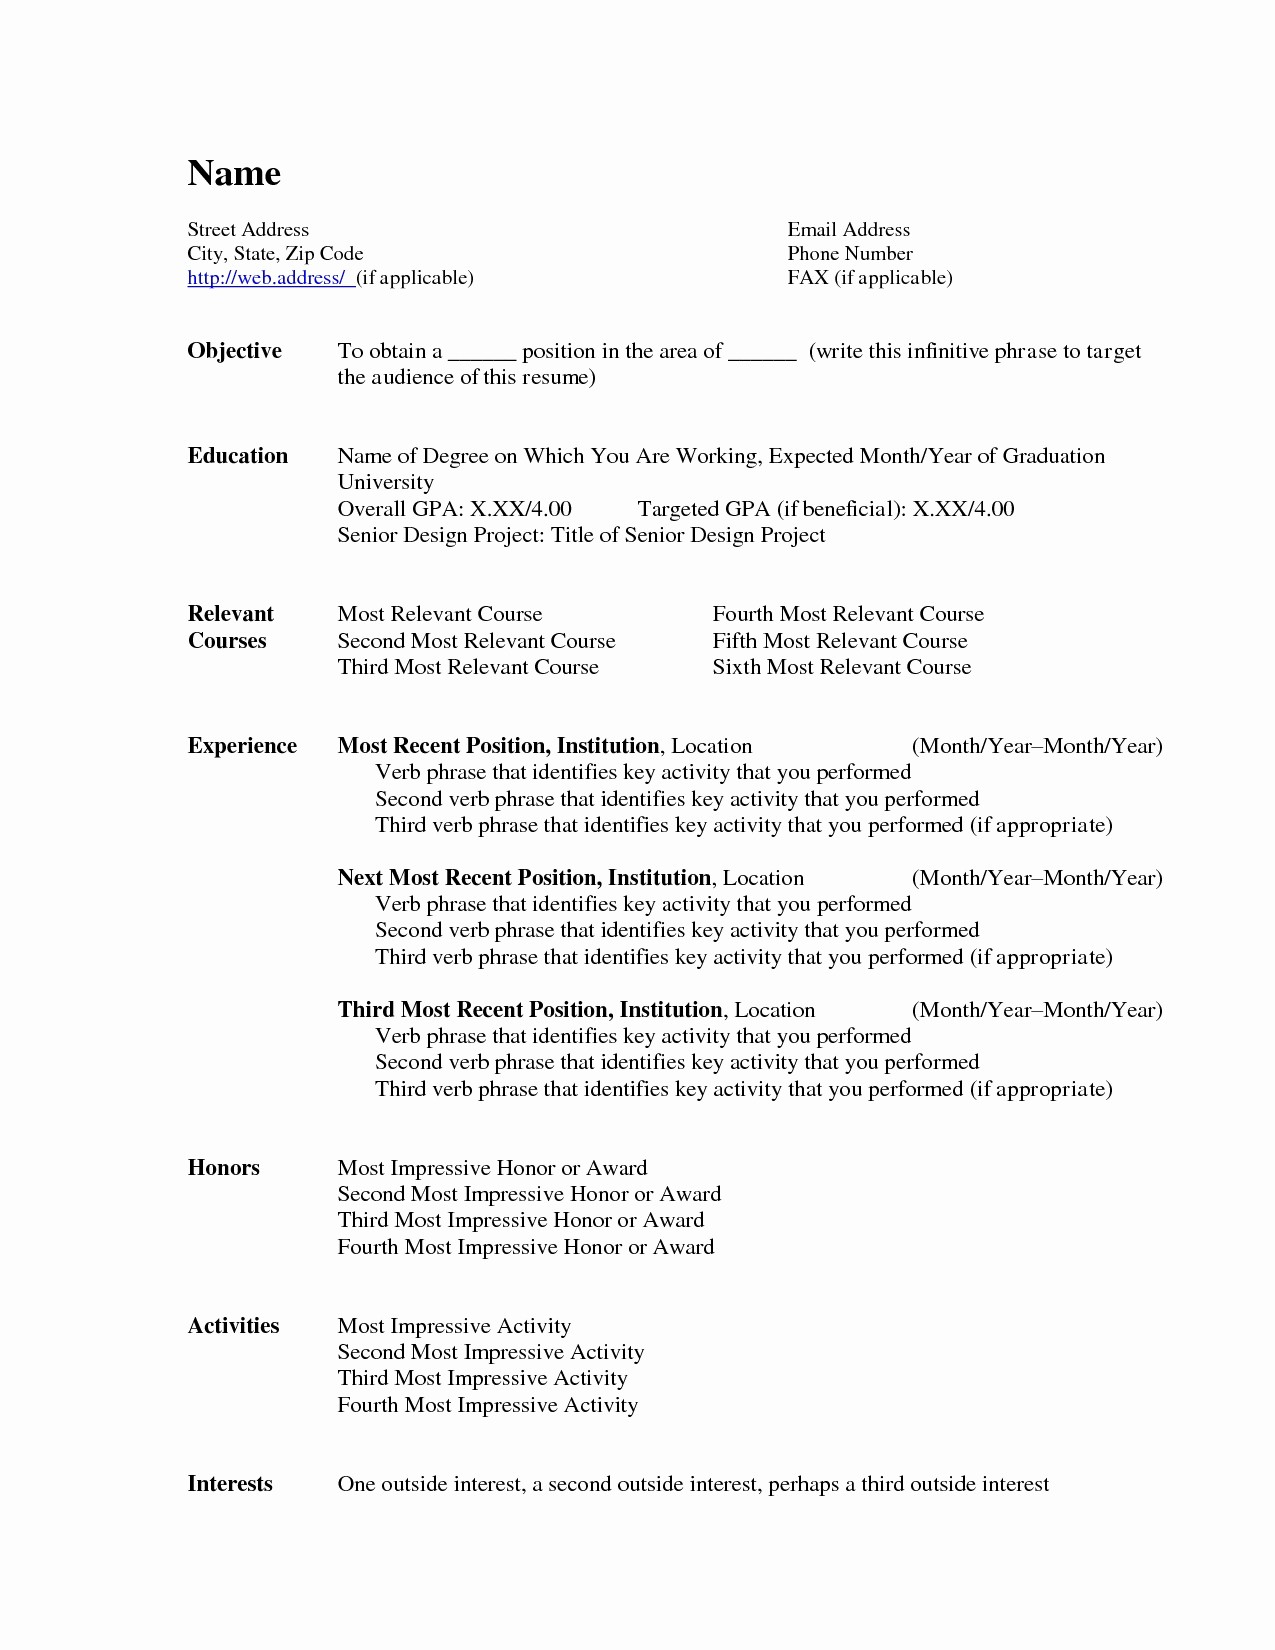 Microsoft Office Word Resume Templates New Microsoft Word Resume Templates Beepmunk